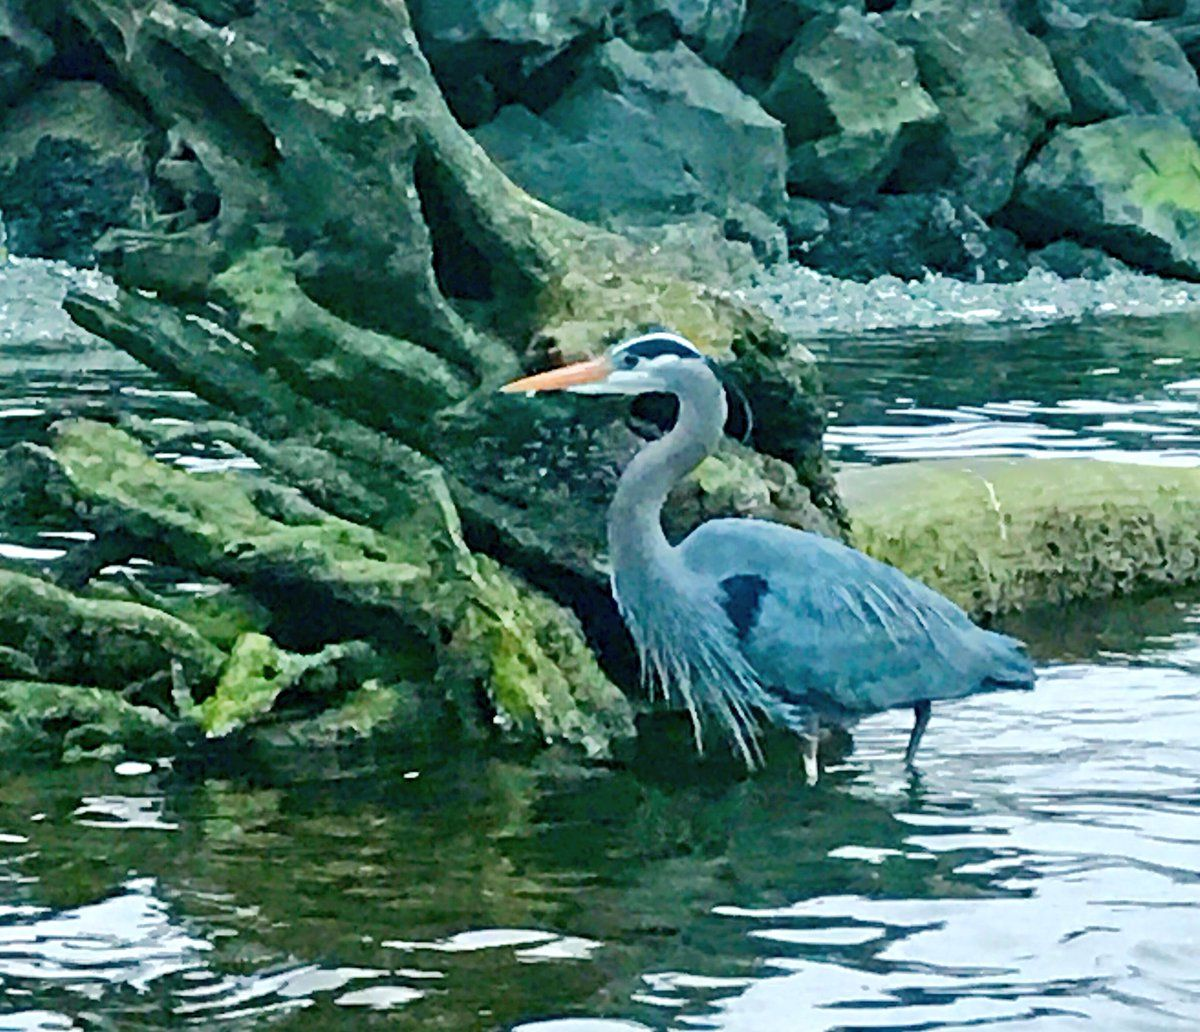 Brad Booker‏ @bbooker32 Come on in, the waters fine! #Spring #BlueHeron #Nature @ThePhotoHour @DesMoinesMarina (April 16th, 2017)